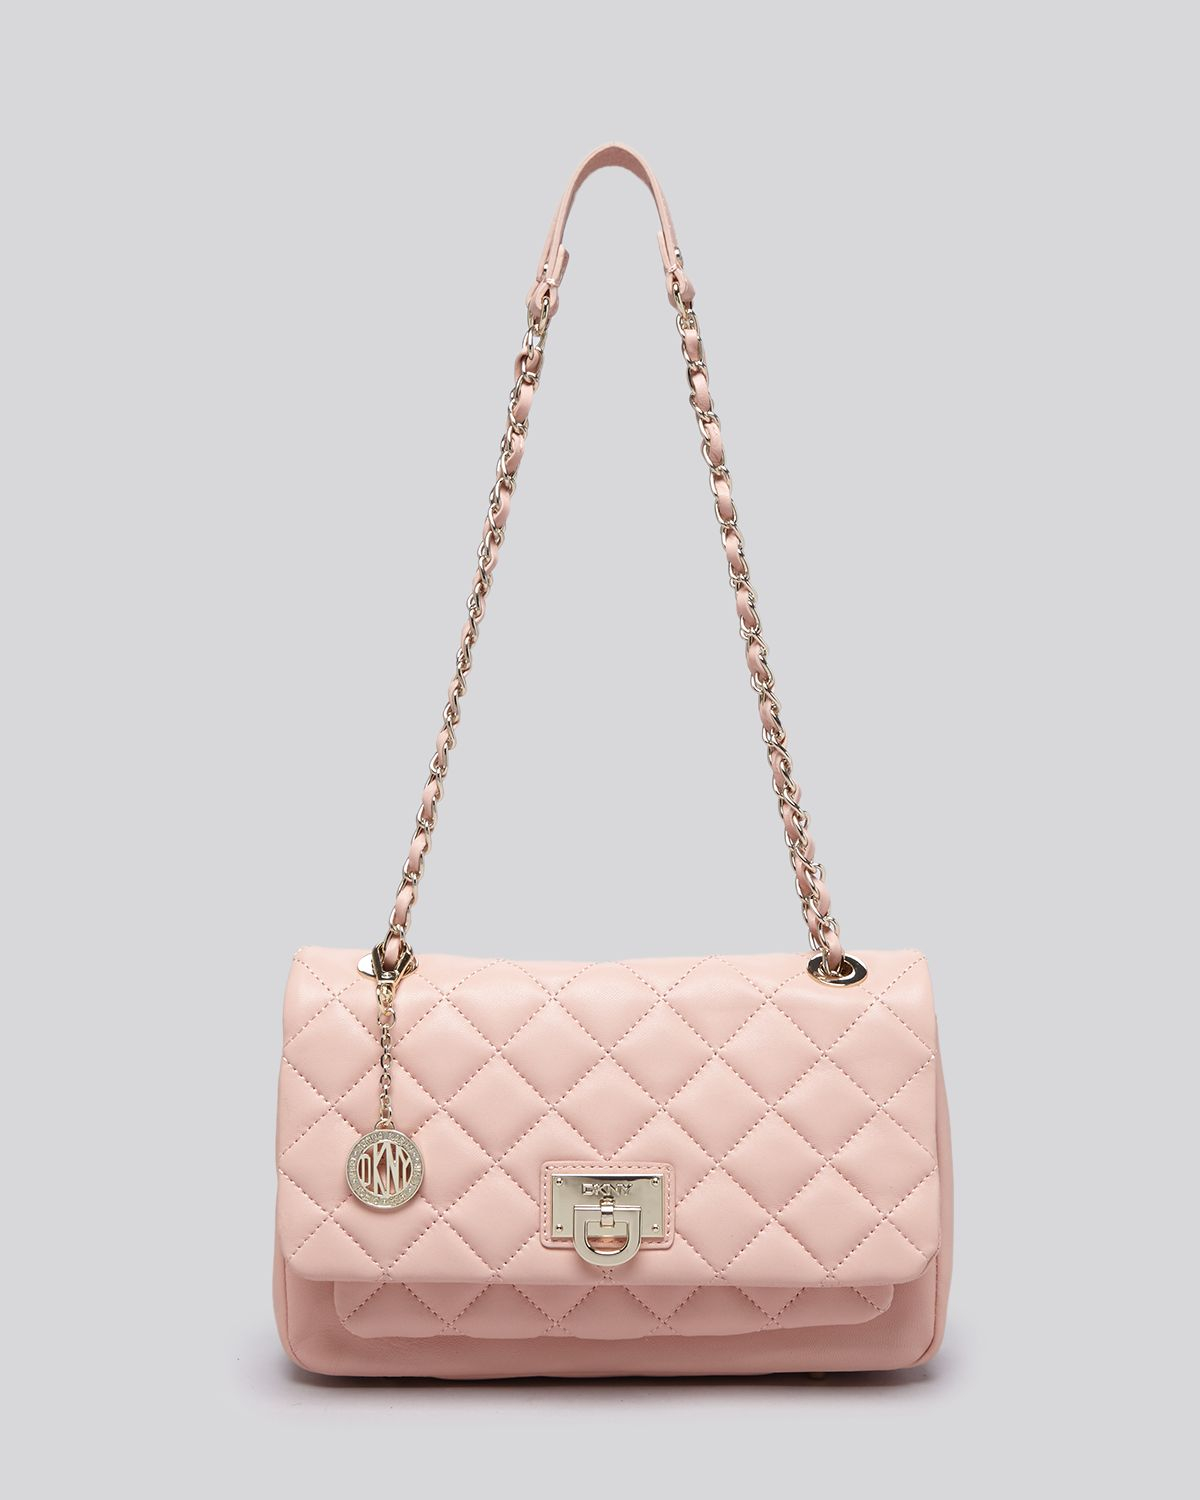 Dkny Shoulder Bag - Gansevoort Quilted Flap Pocket in Pink | Lyst